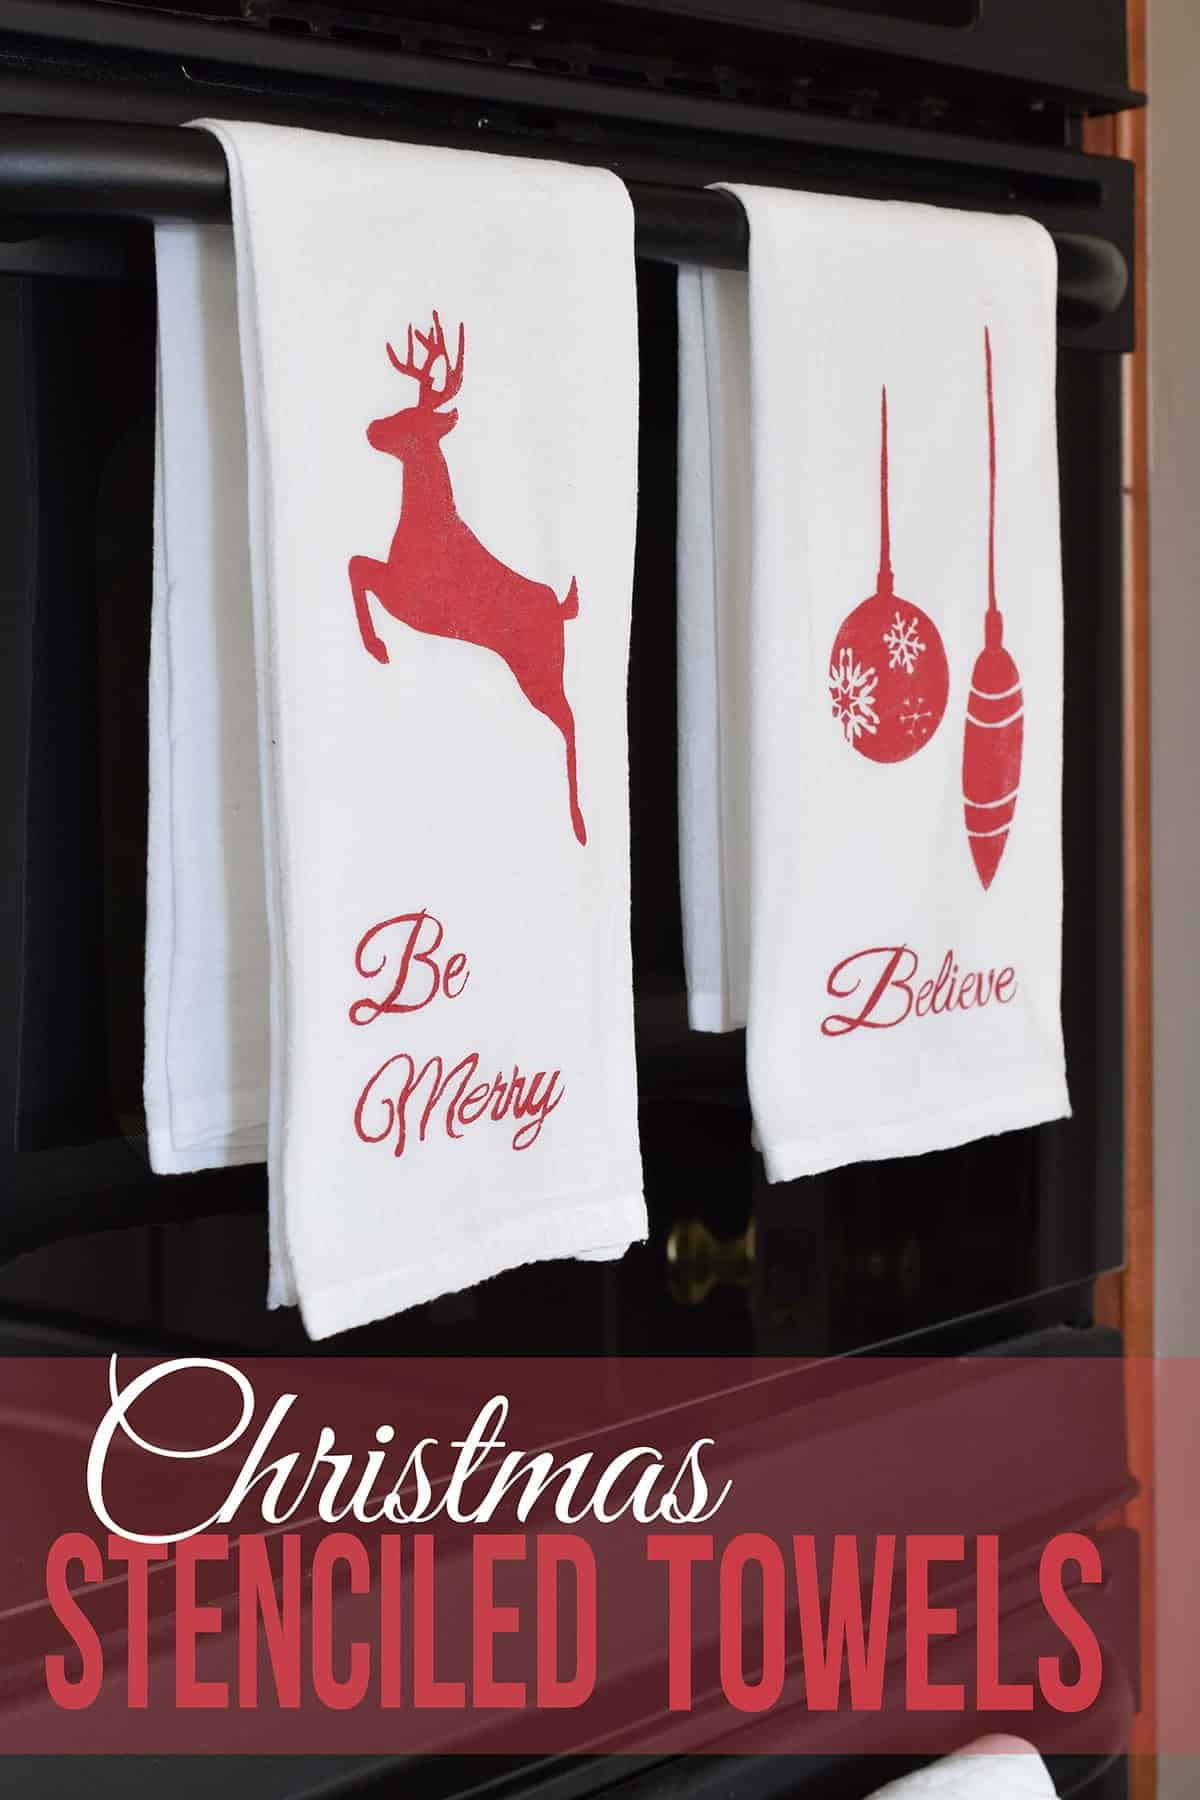 Christmas Stenciled Tea Towels - Free Christmas Silhouette Icons to create stencils including jumping reindeer, ornaments, Christmas Tree silhouettes, and text. Files are available in PDF and free silhouette studio cutfiles